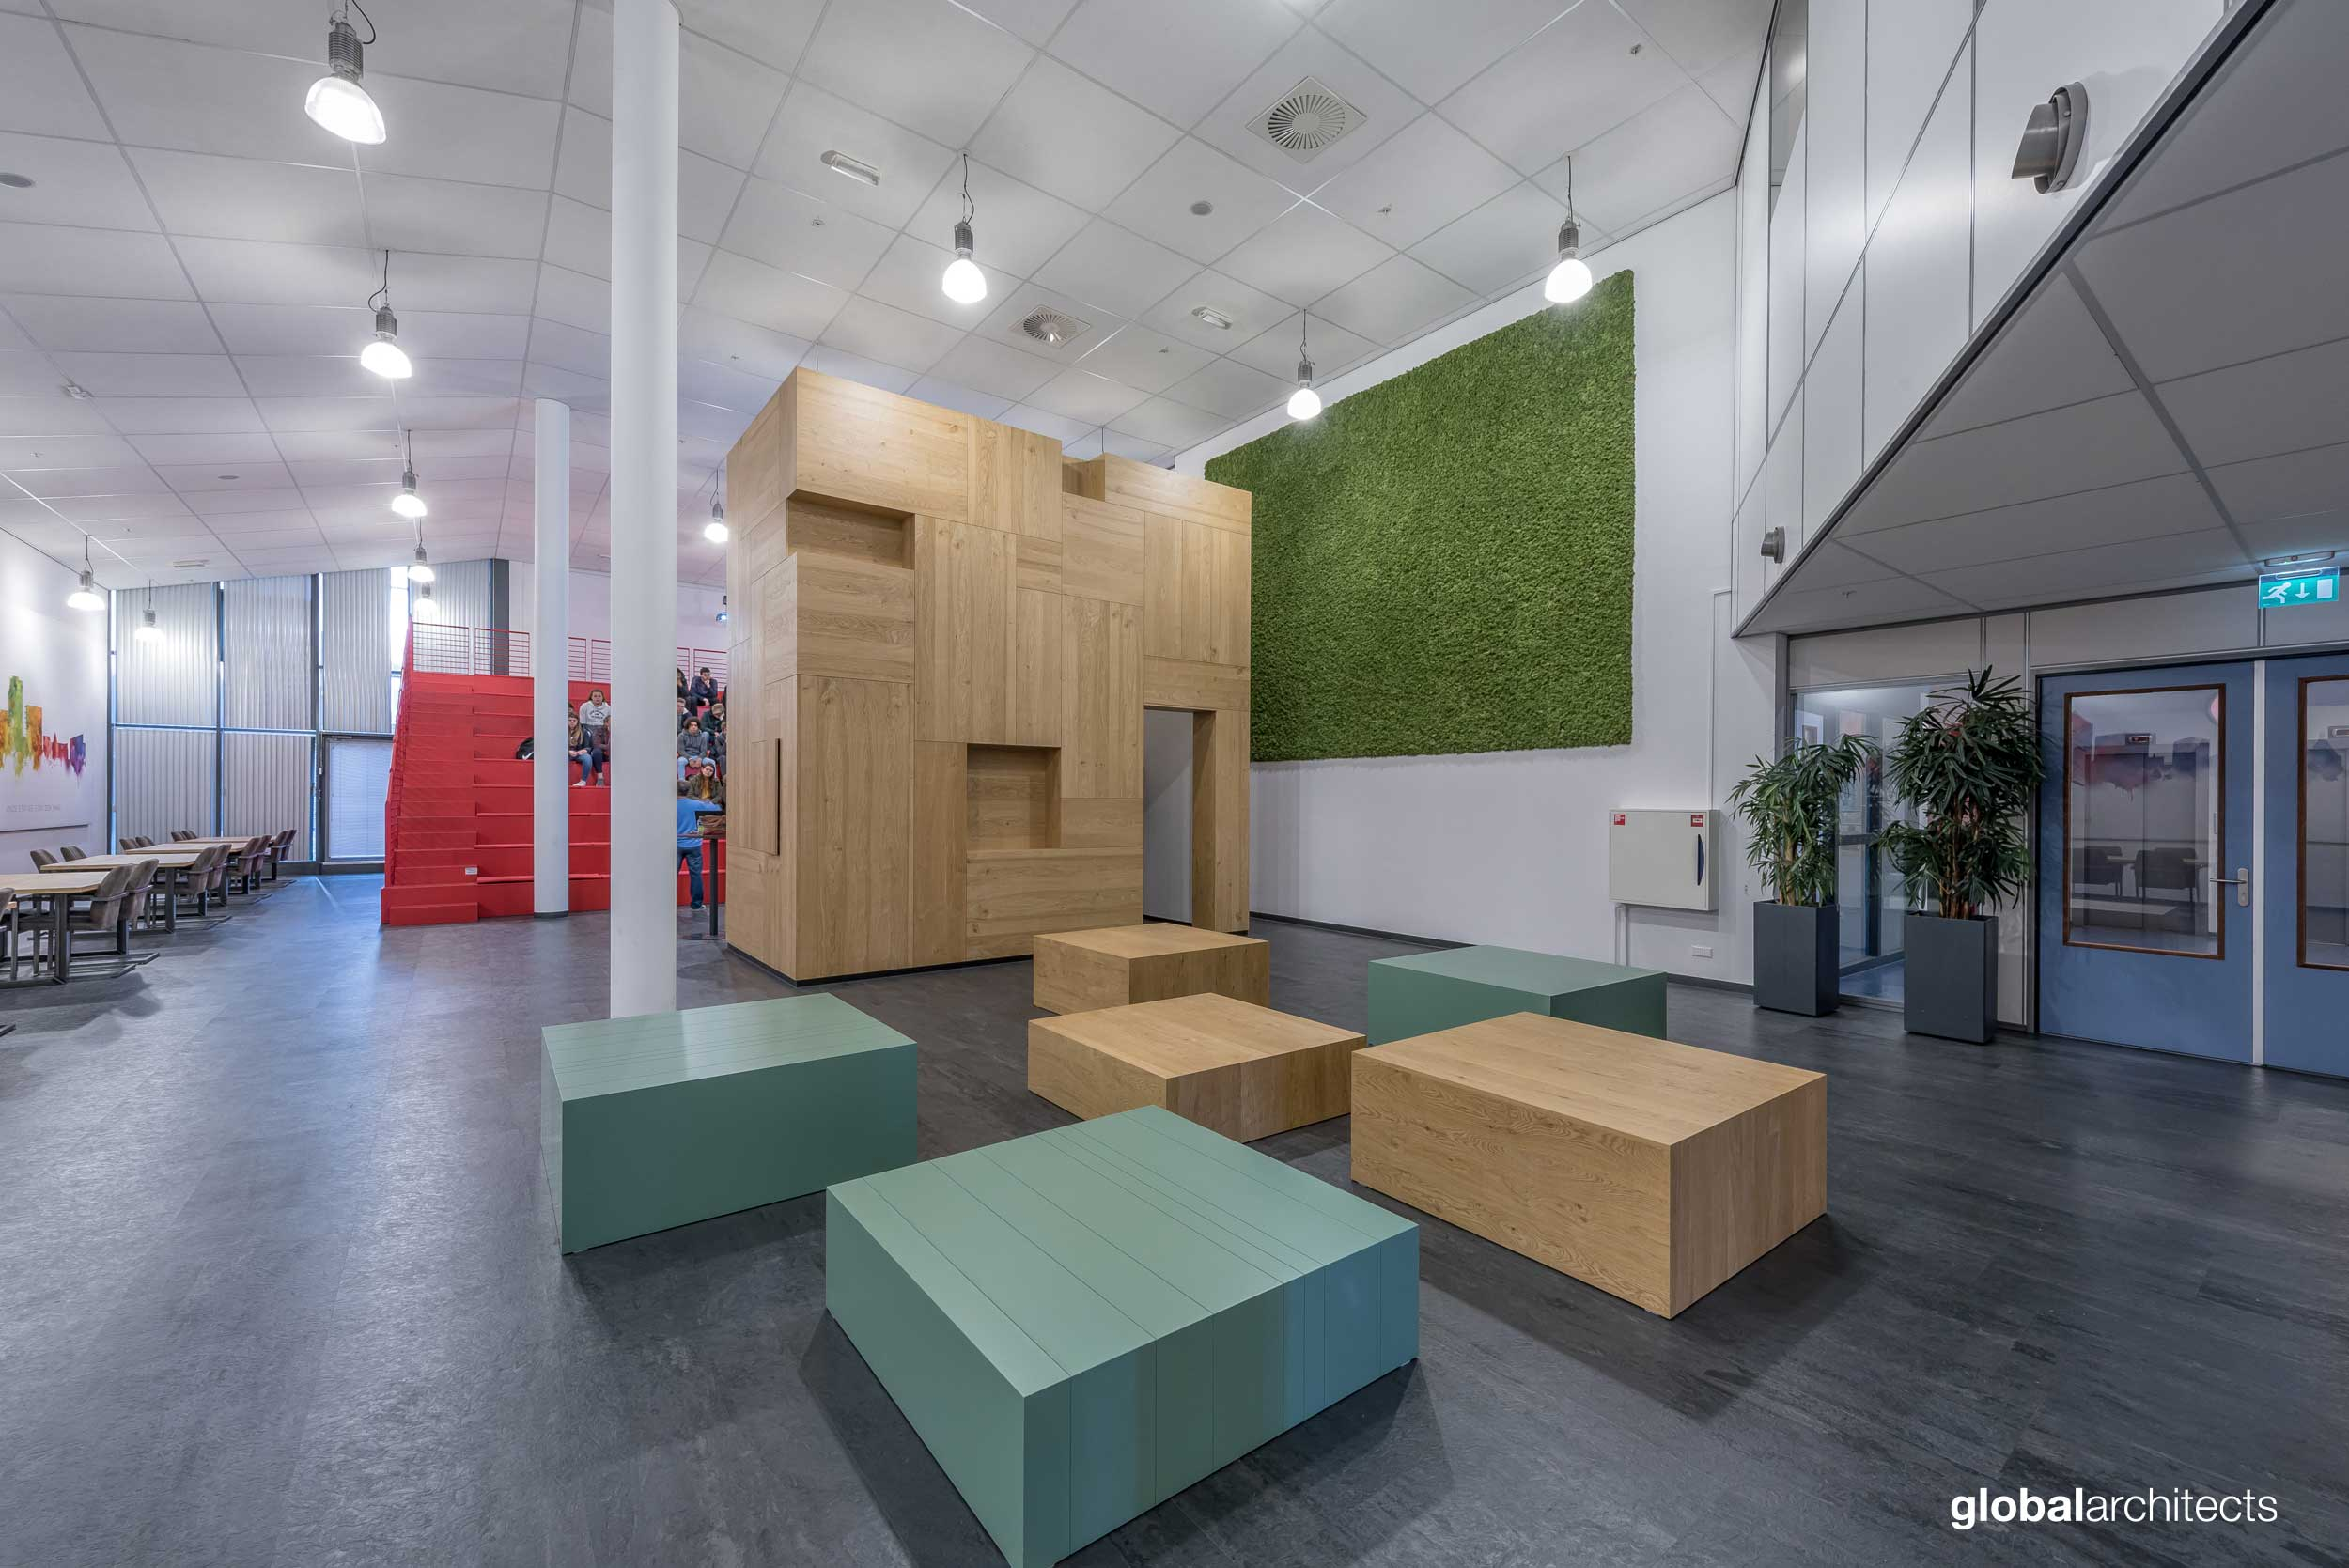 roc mondriaan school interieur architectenbureau architect